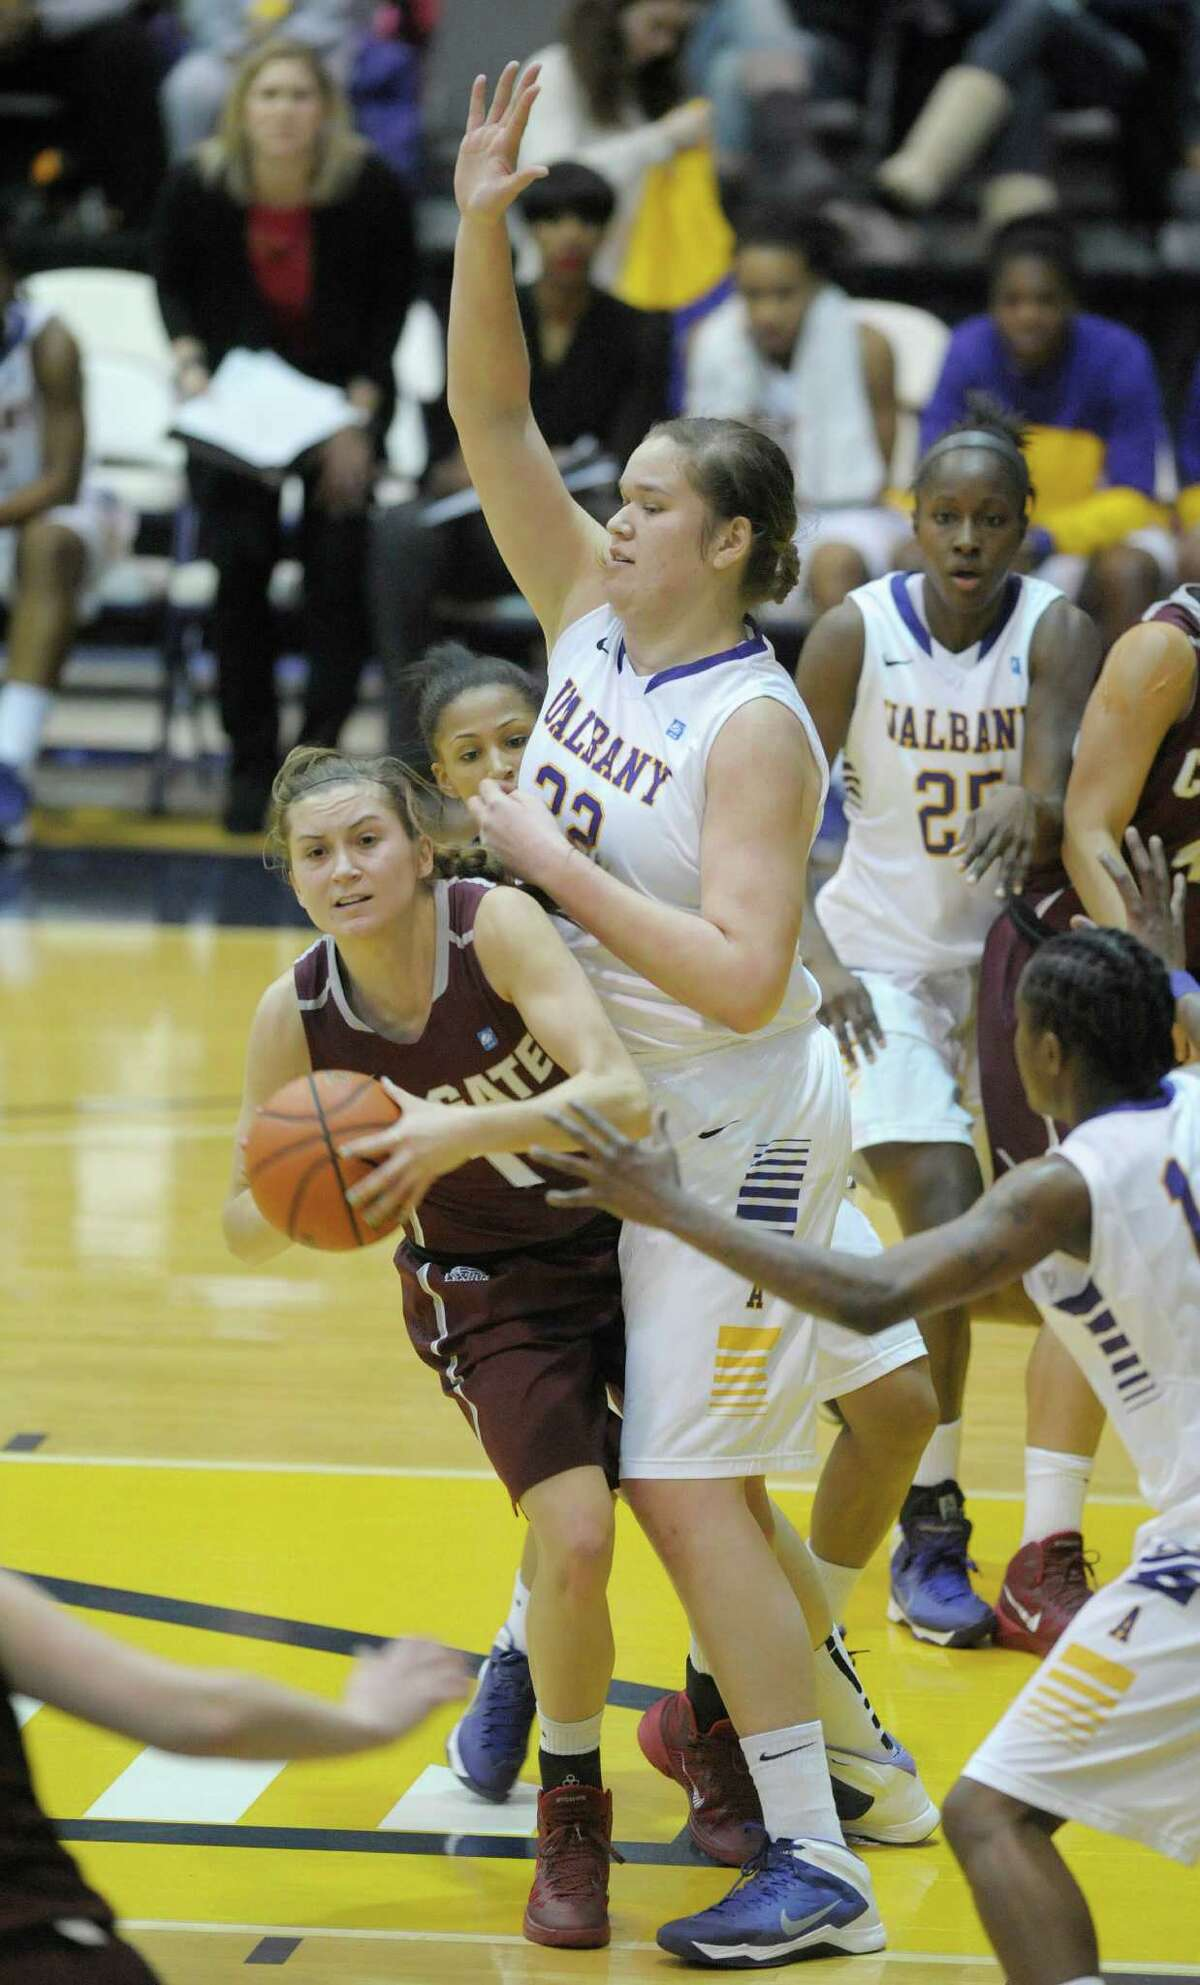 Lauryn Kobiela of Colgate, left, looks for an open teammate after being stopped in the lane by Megan Craig of UAlbany during the UAlbany and Colgate women's basketball game on Sunday, Dec. 22, 2013 in Albany, NY. (Paul Buckowski / Times Union)